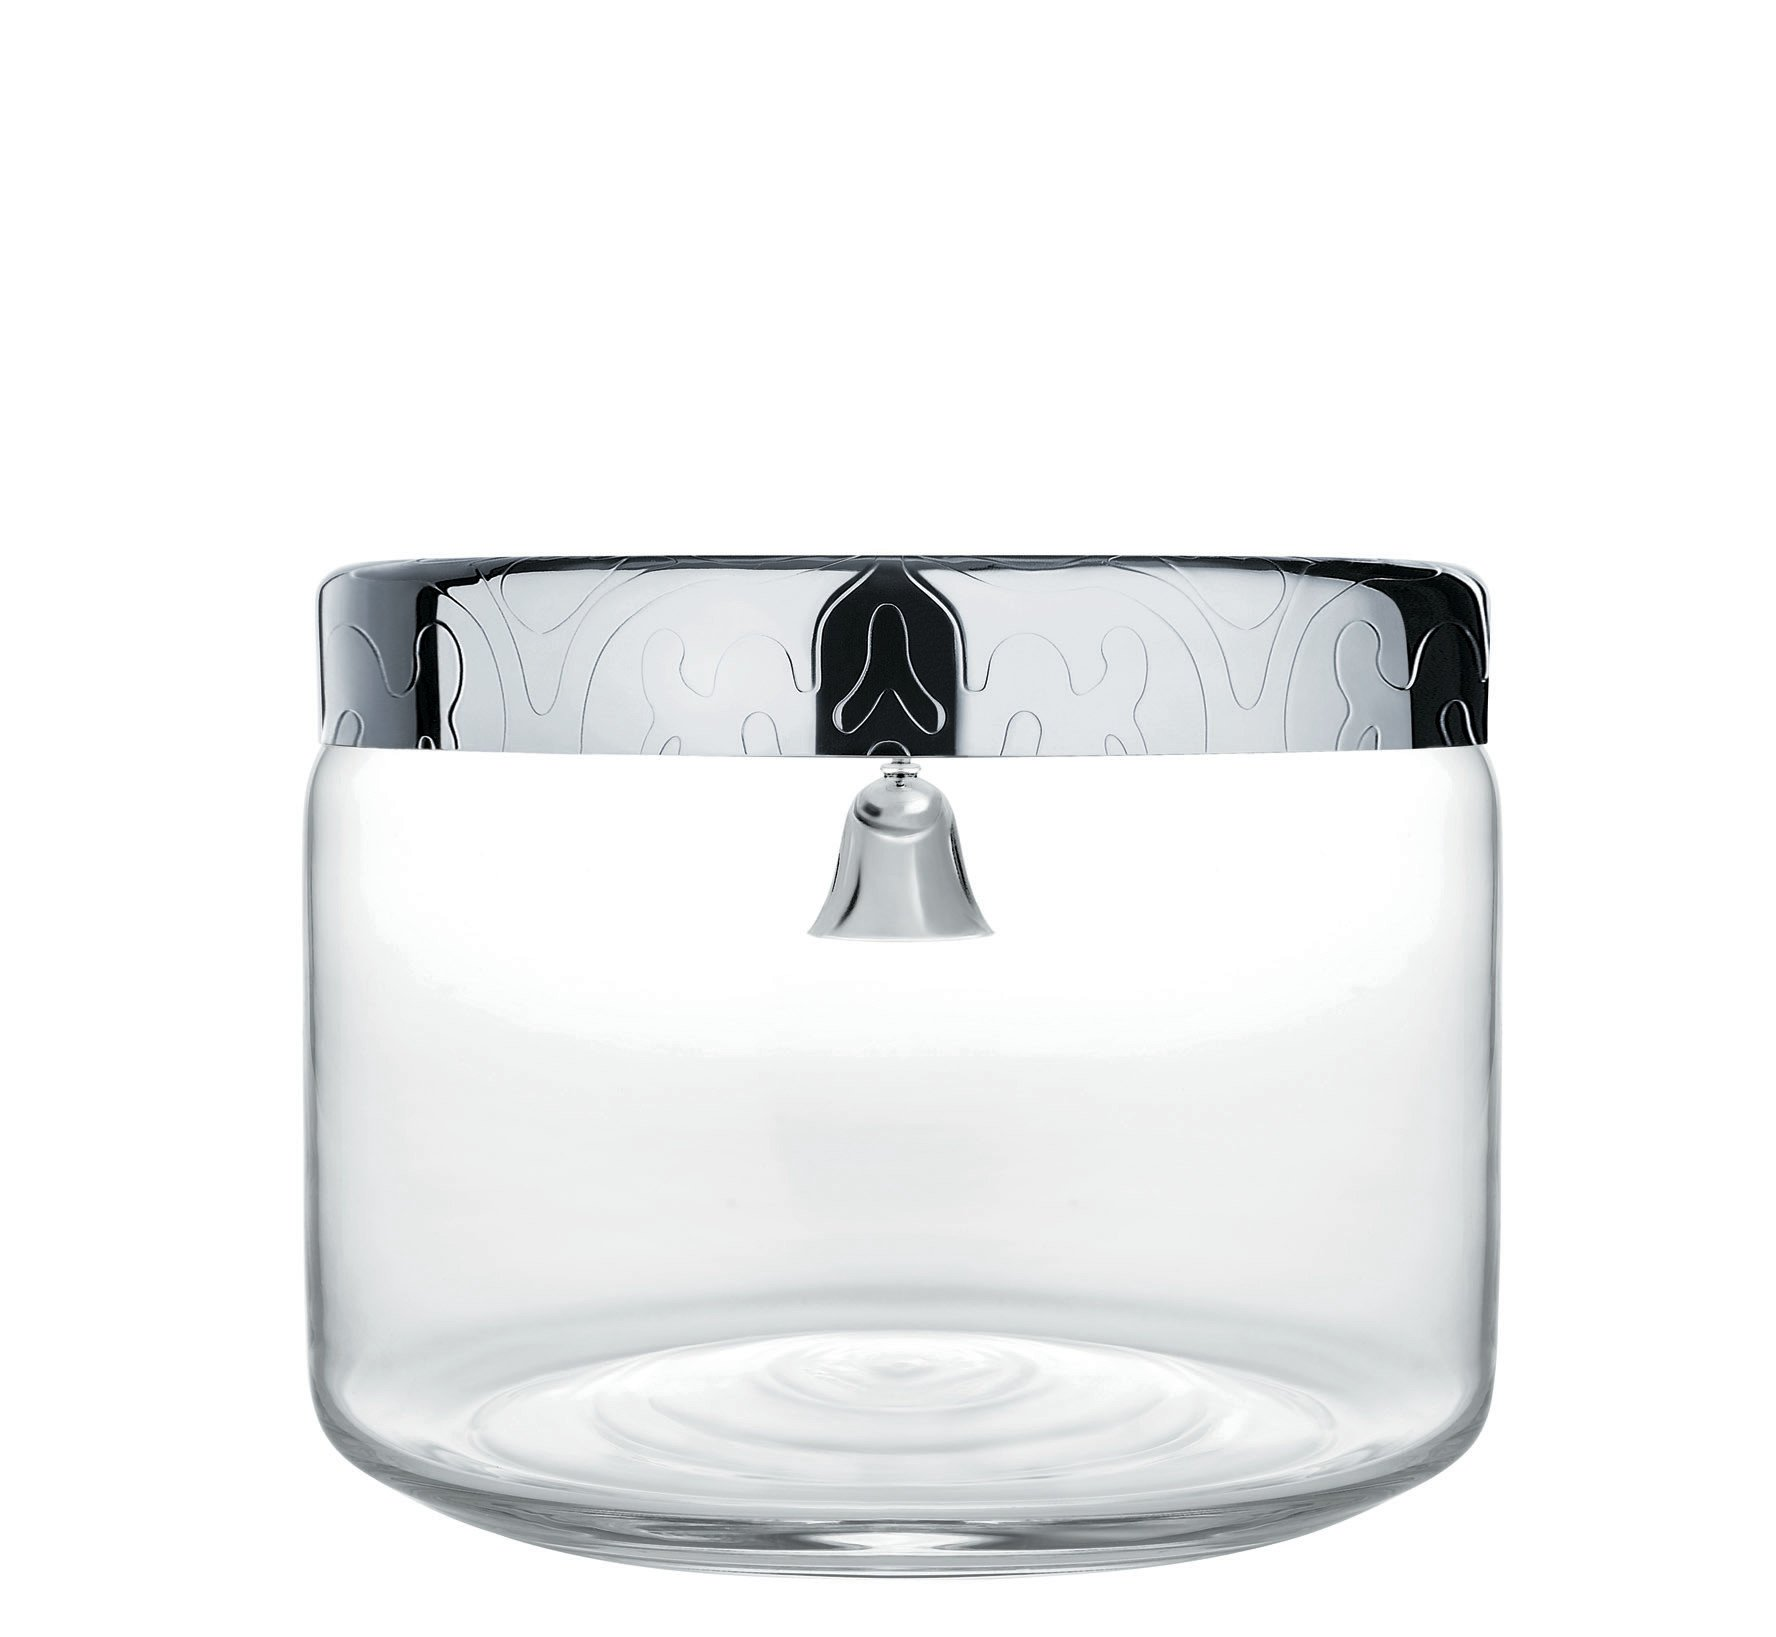 Alessi ''Dressed'' Cookie Jar in Glass Lid in 18/10 Stainless Steel Mirror Polished With Bell And Relief Decoration, Silver by Alessi